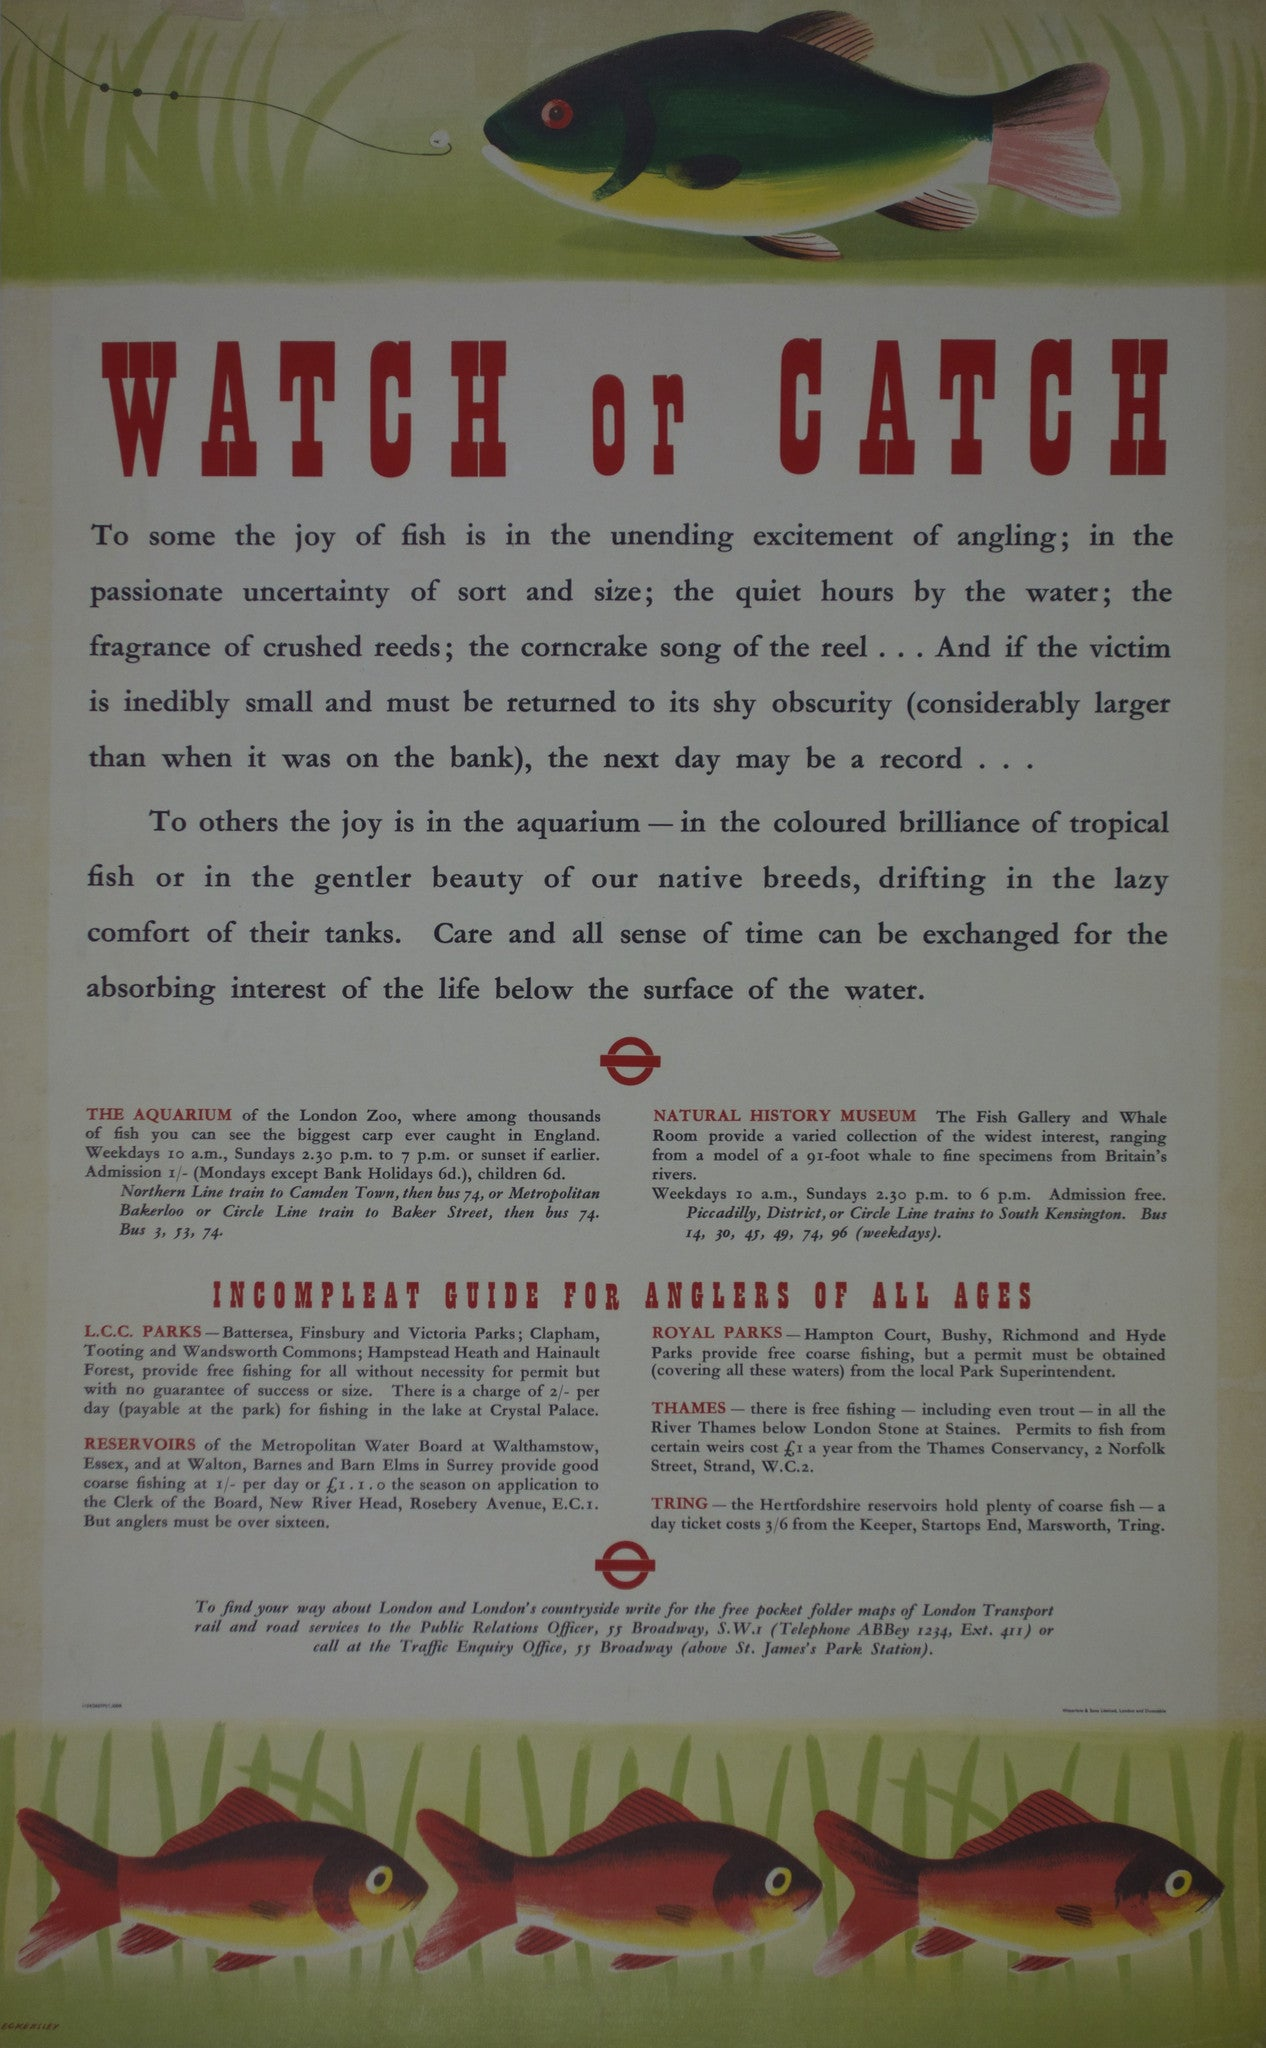 Watch or Catch